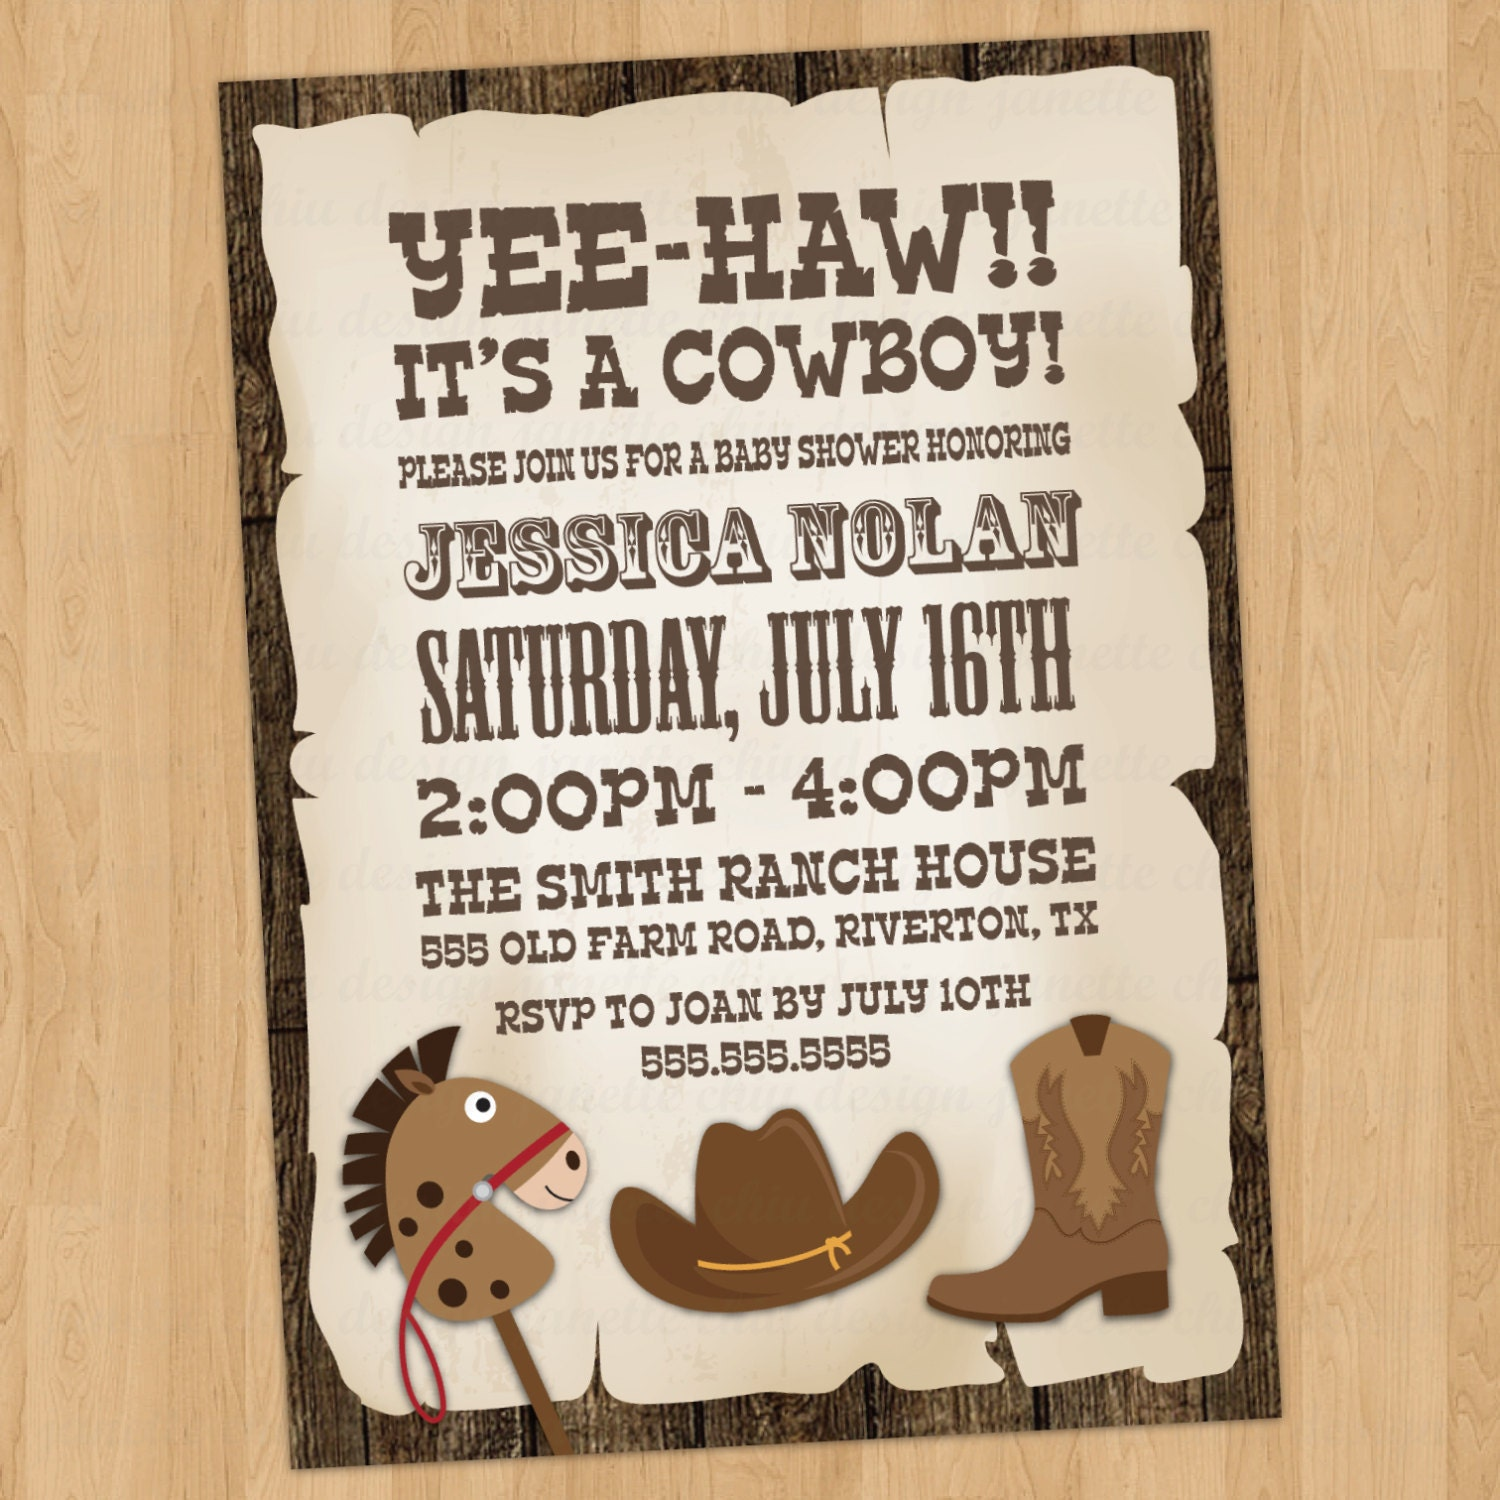 Cowboy Baby Shower Invitation Digital Printable, ANY color ANY wording: www.etsy.com/listing/153702145/cowboy-baby-shower-invitation-digital